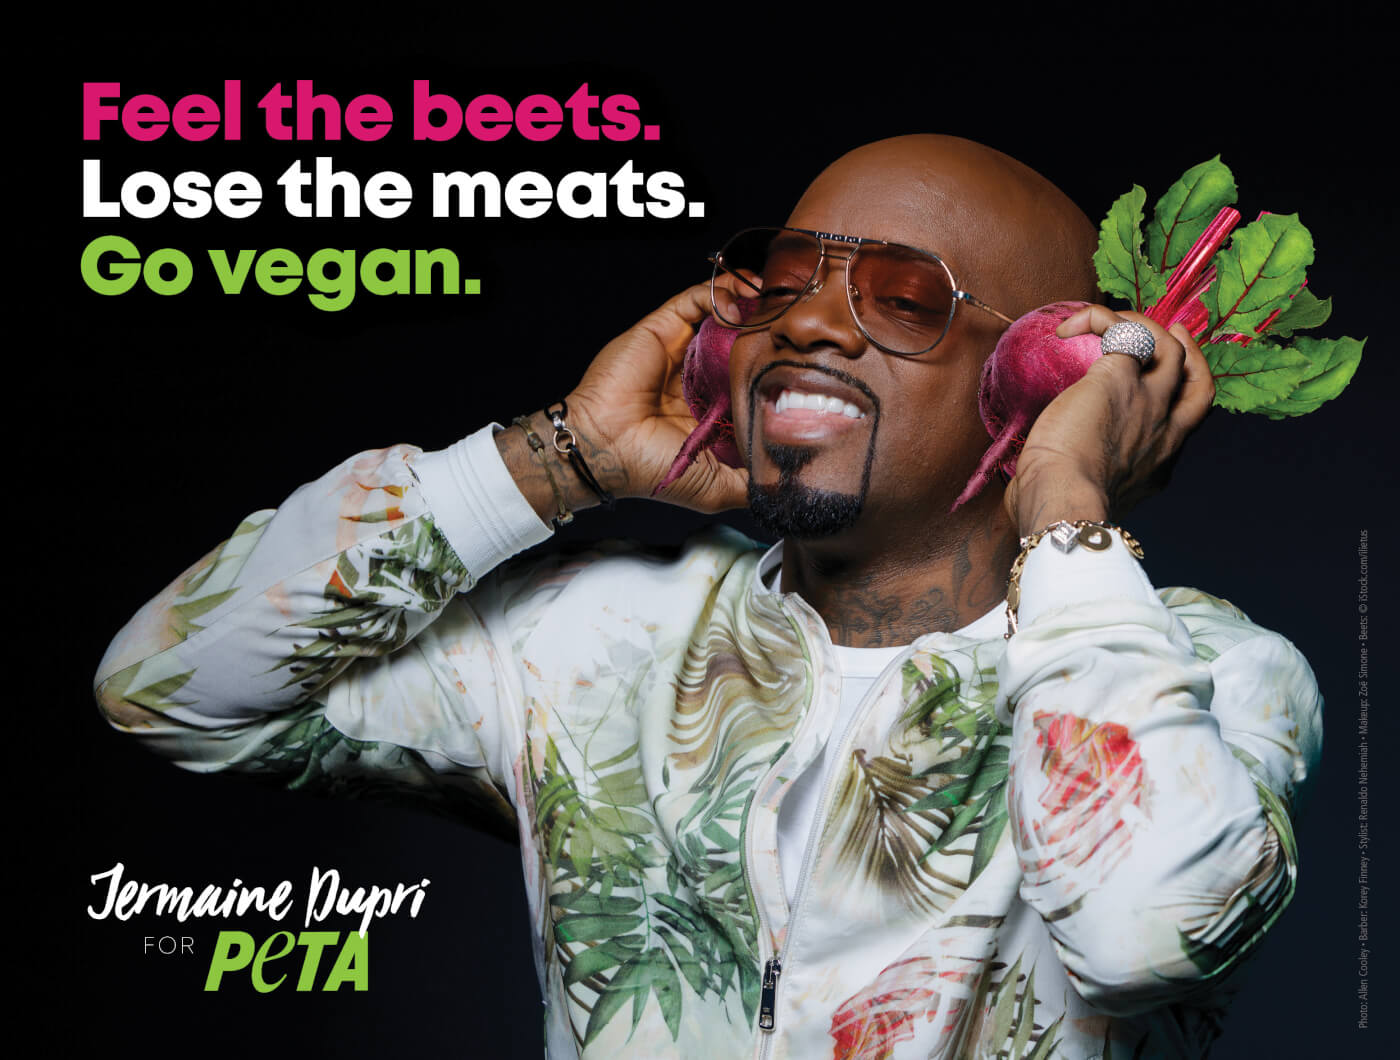 Jermaine Dupri Wants You to 'Feel the Beets' in New PETA Video